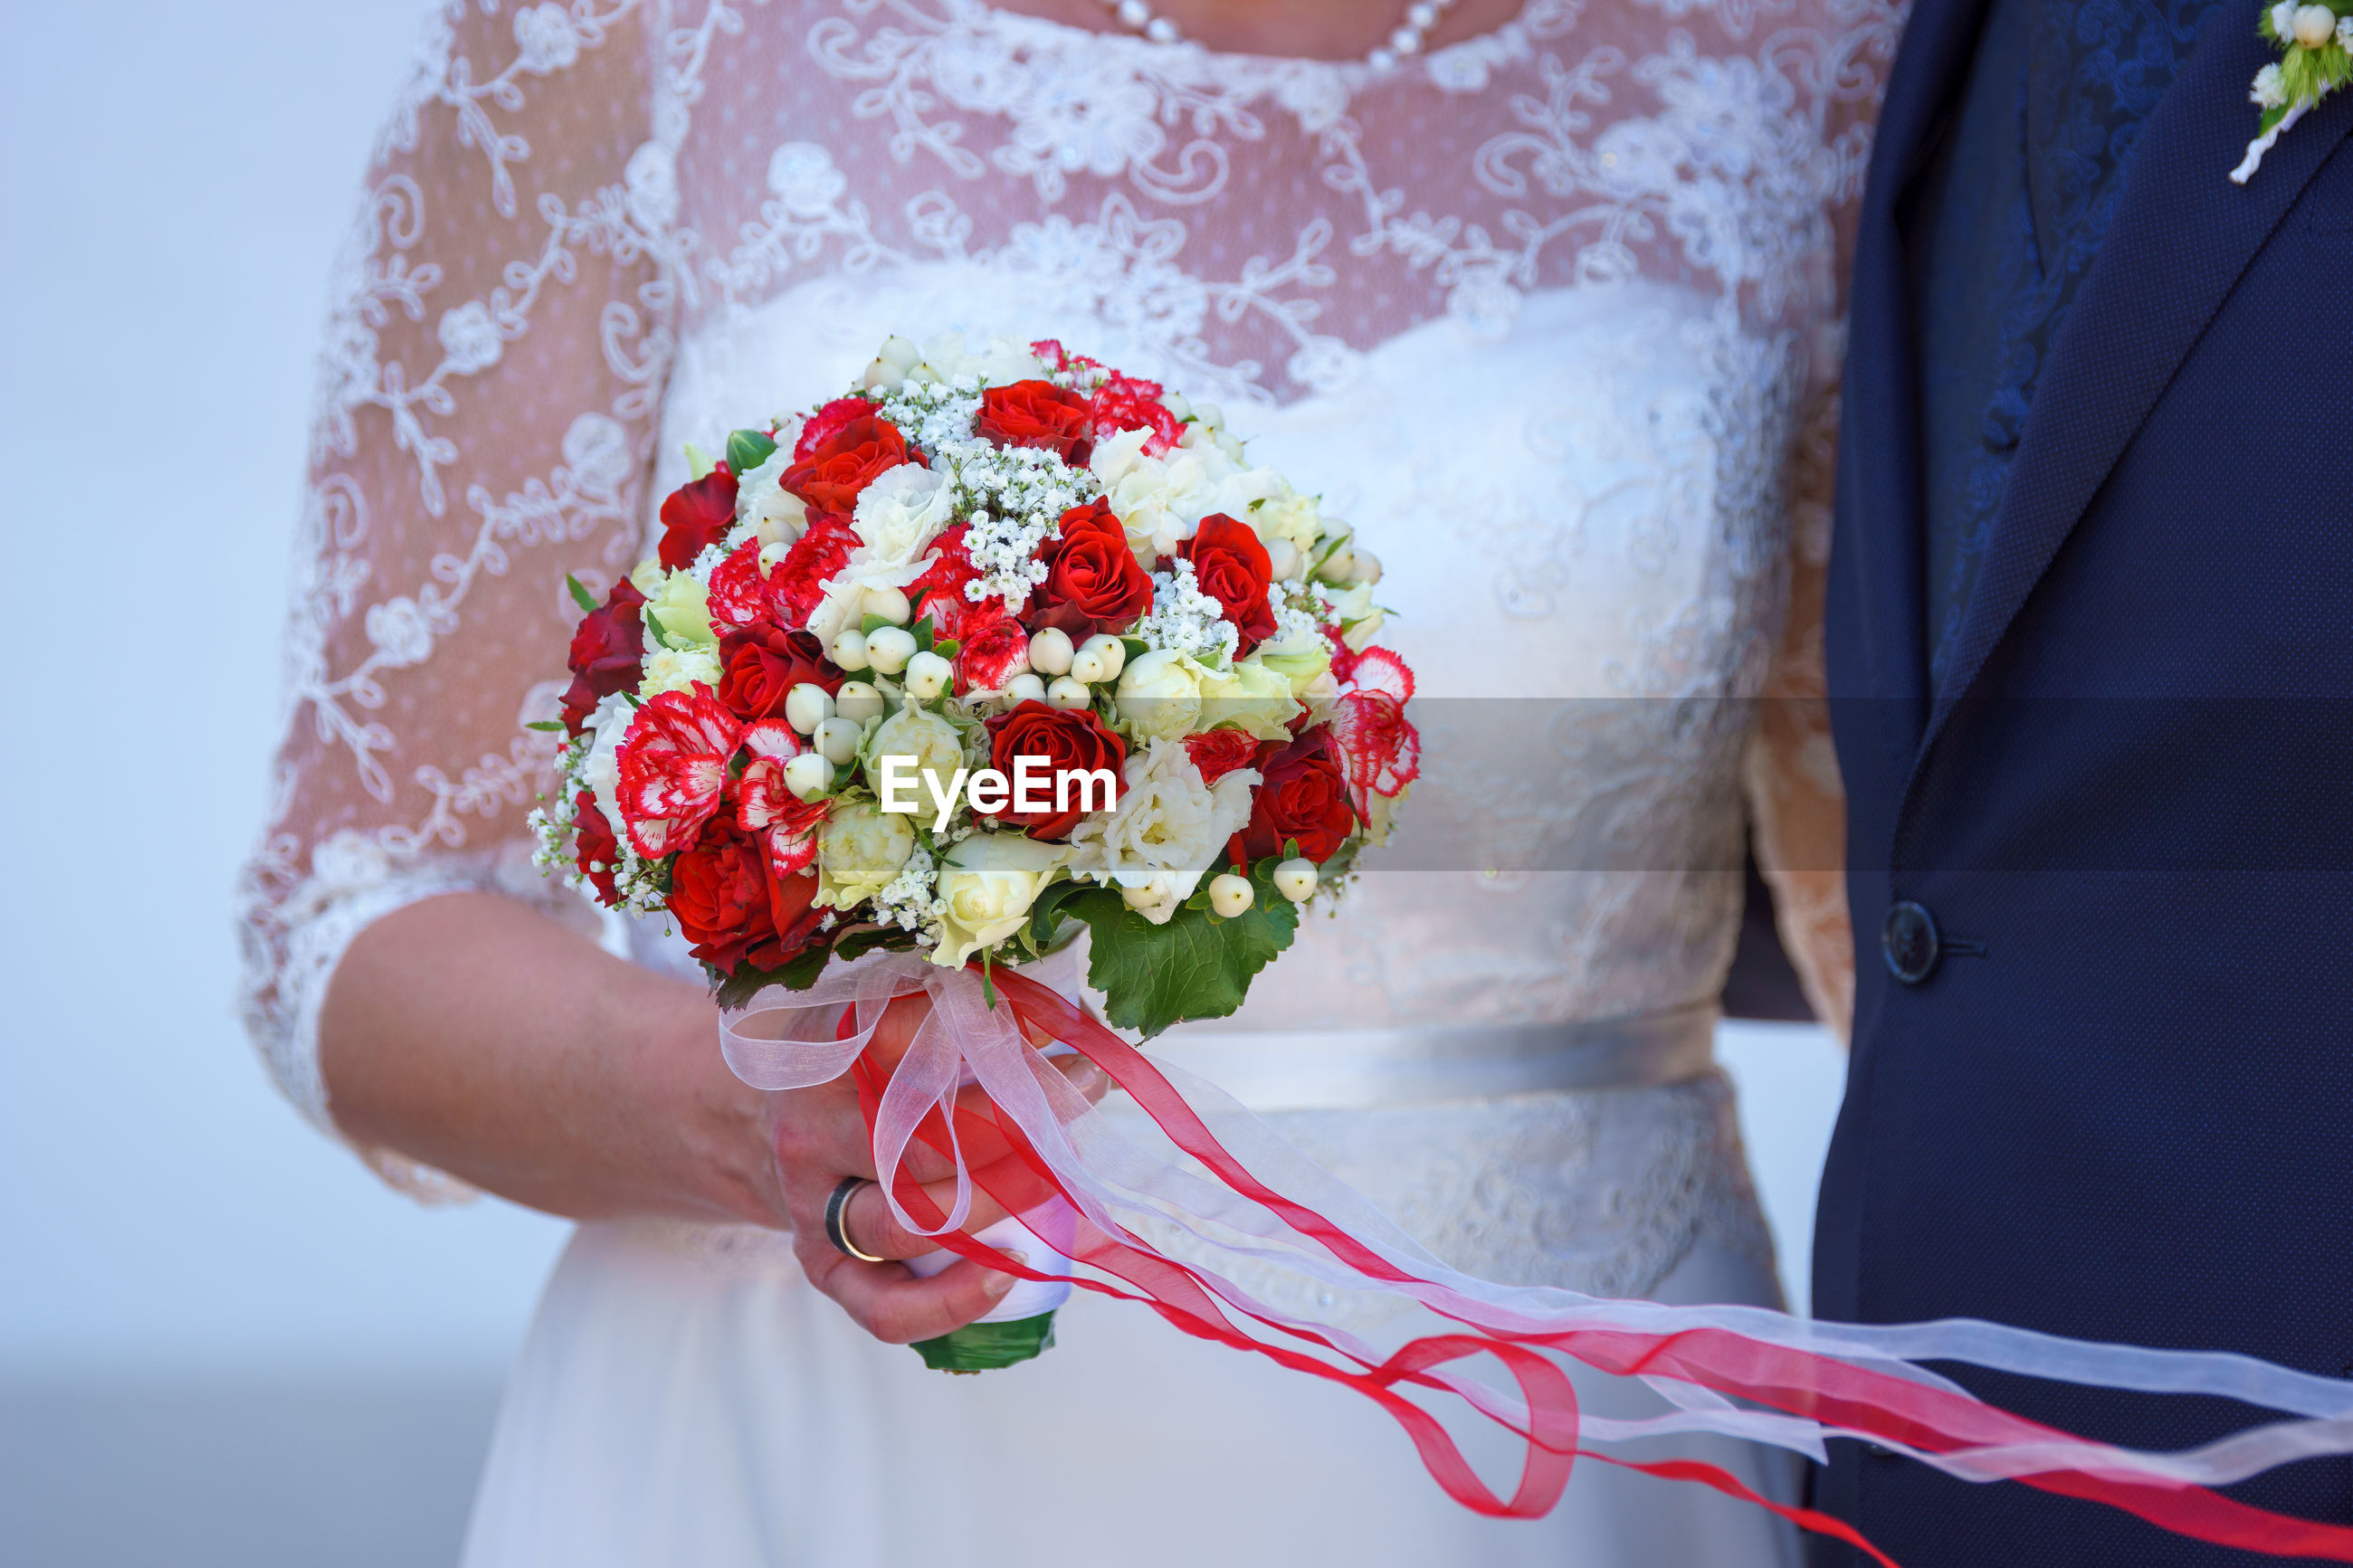 CLOSE-UP OF WOMAN HOLDING BOUQUET OF RED ROSE